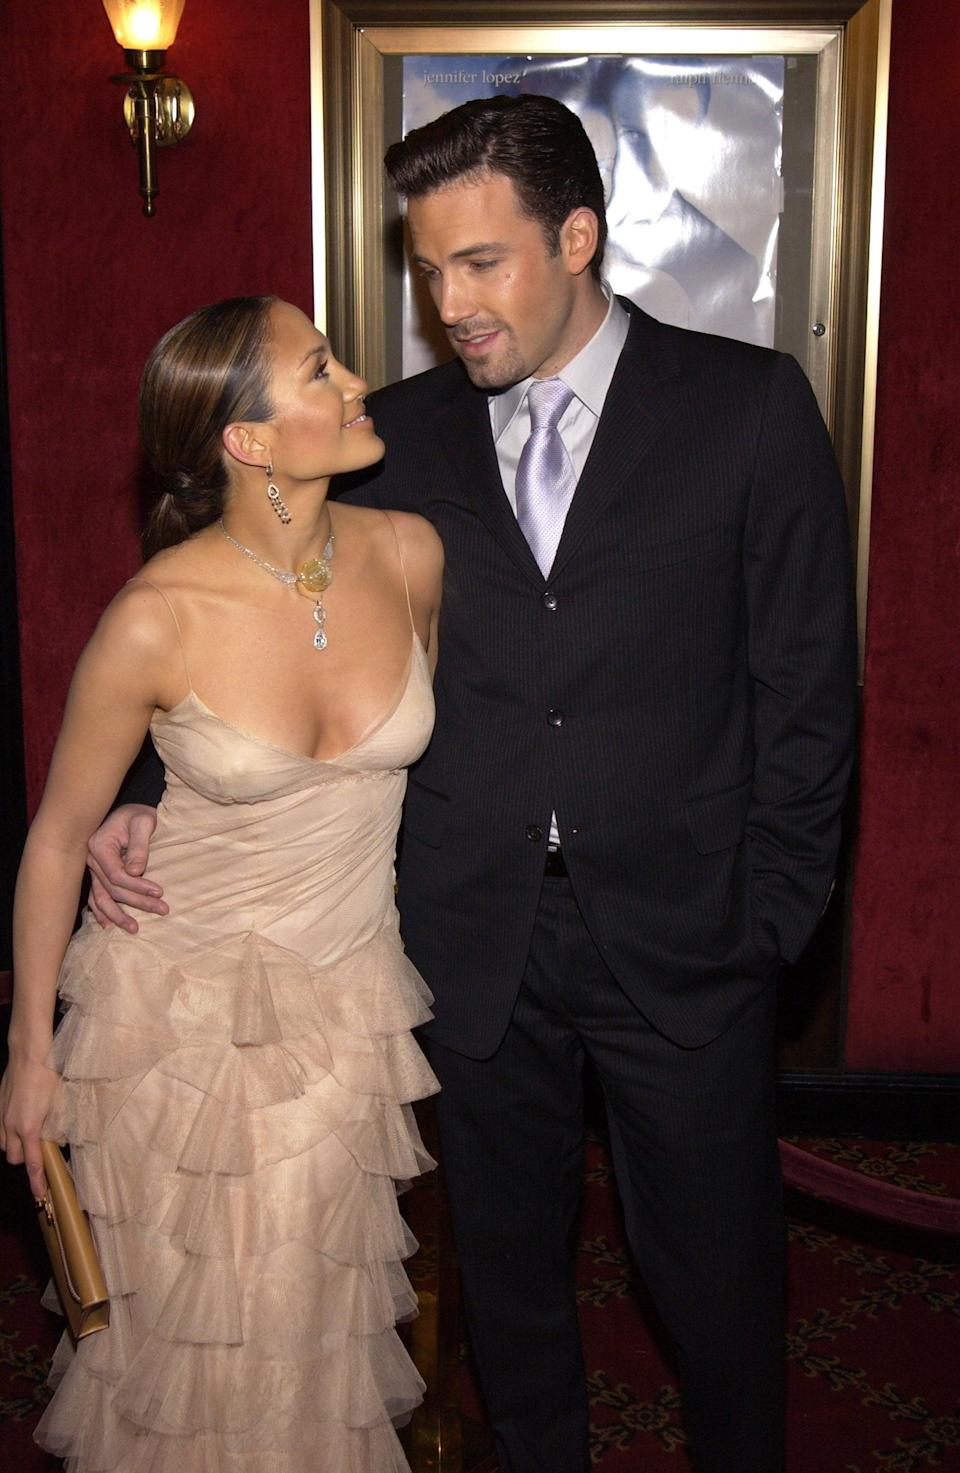 <p>Jen couldn't take her eyes off of Ben as they attended the NYC premiere of her movie <strong>Maid in Manhattan</strong> in December 2002. </p>